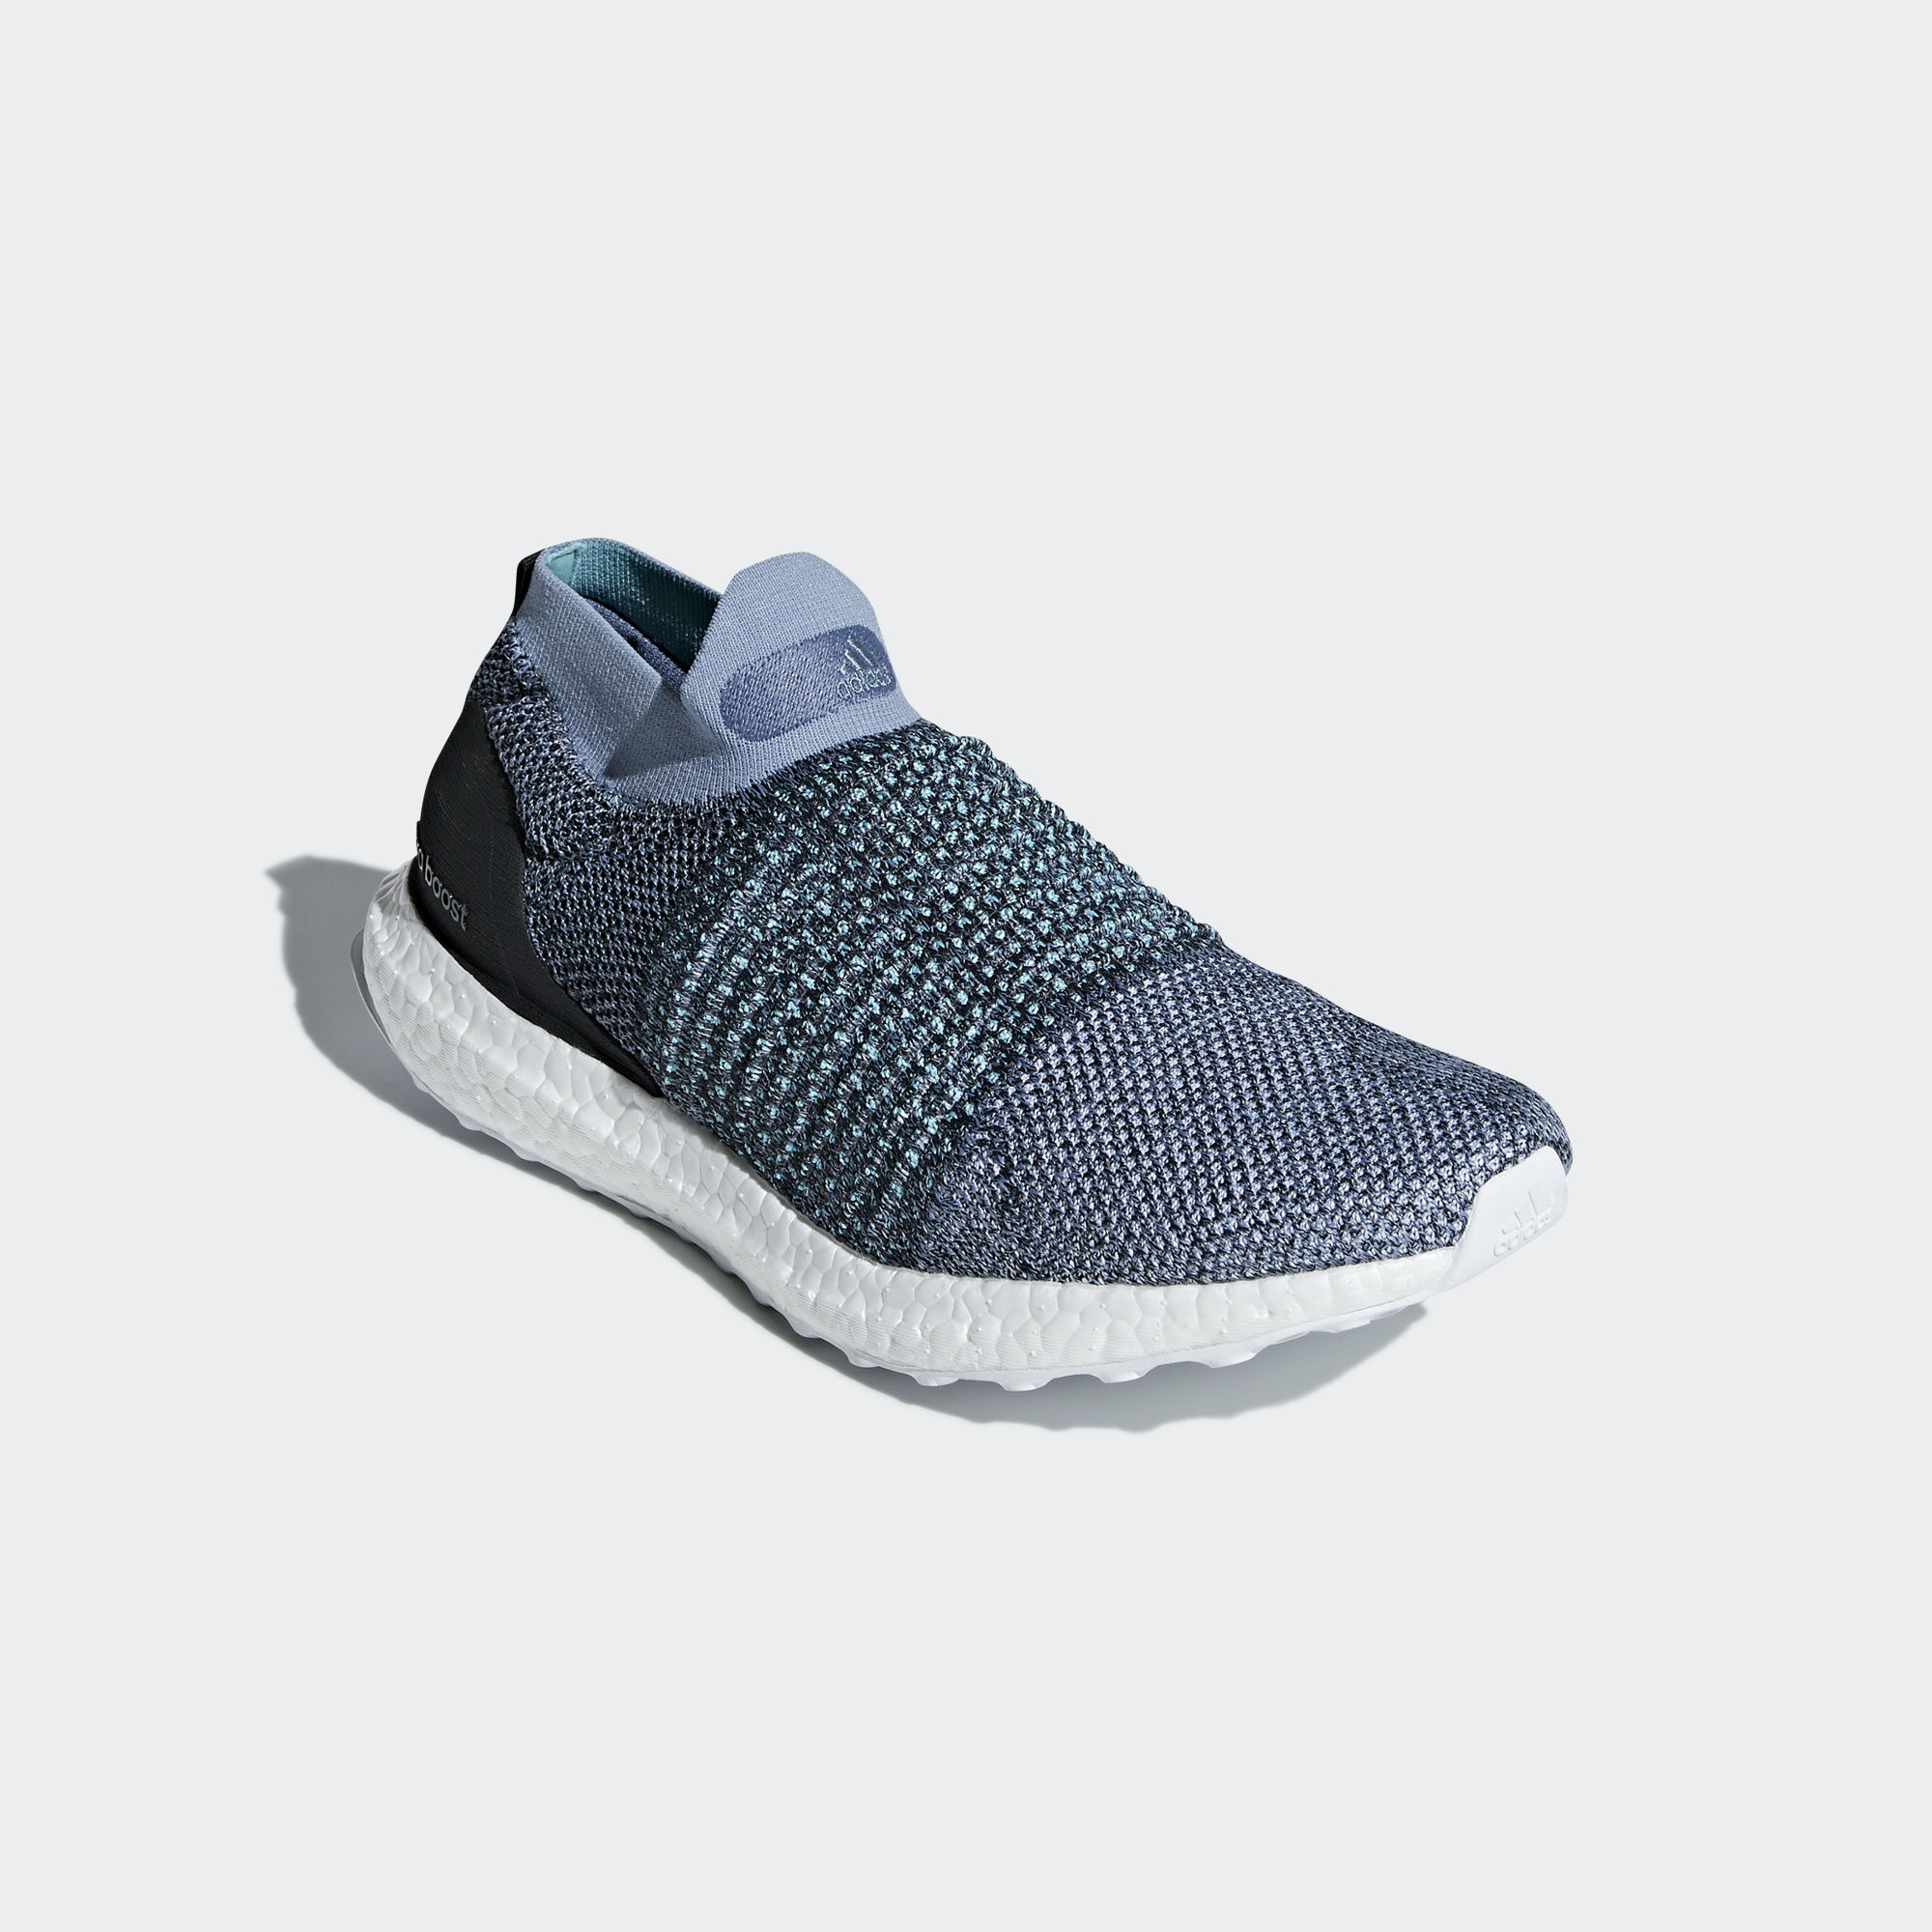 Parley x Adidas Ultra Boost Laceless Raw Grey / Carbon / Blue Spirit (CM8271)